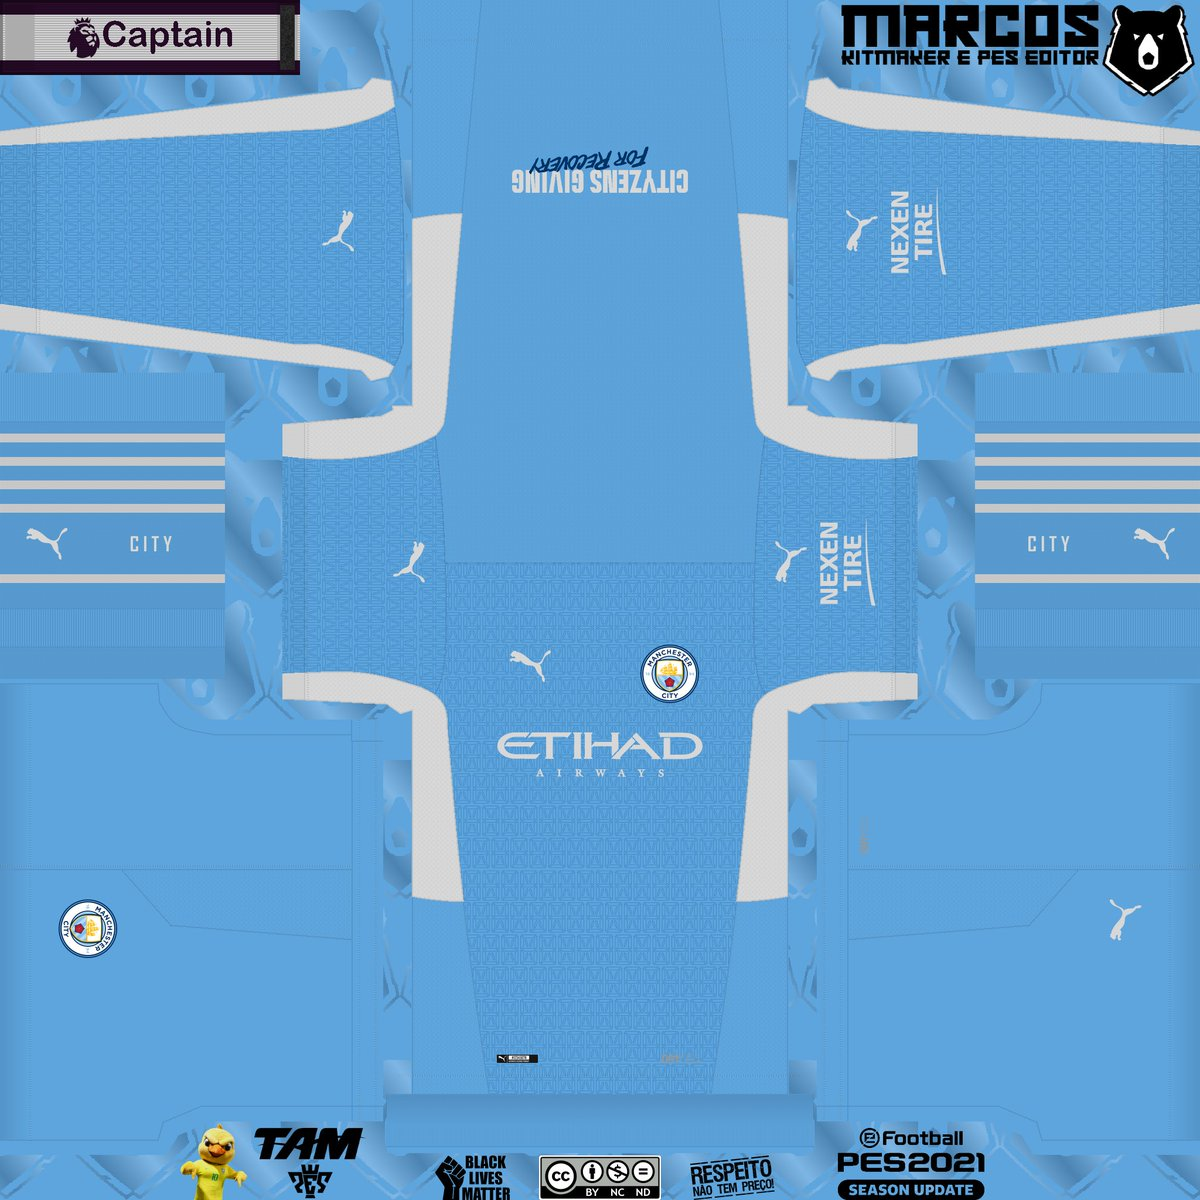 Marwal Pes On Twitter Manchester City Home 2021 22 Posible Camiseta Kitmaker Marcostampes Manchestercity Pes2022 Ps5